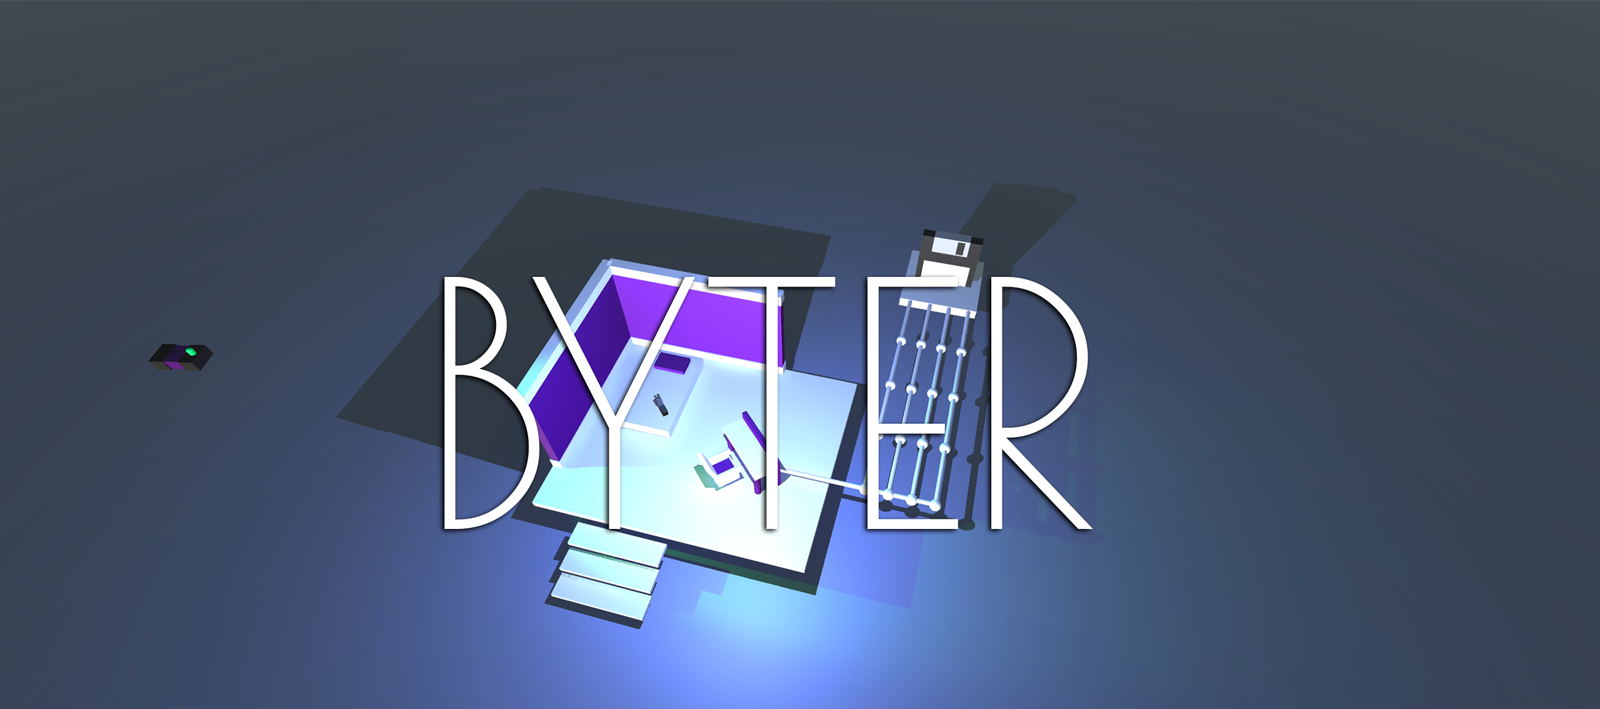 Byter, Open Source Clicker Game for GitHub Game Off 2016